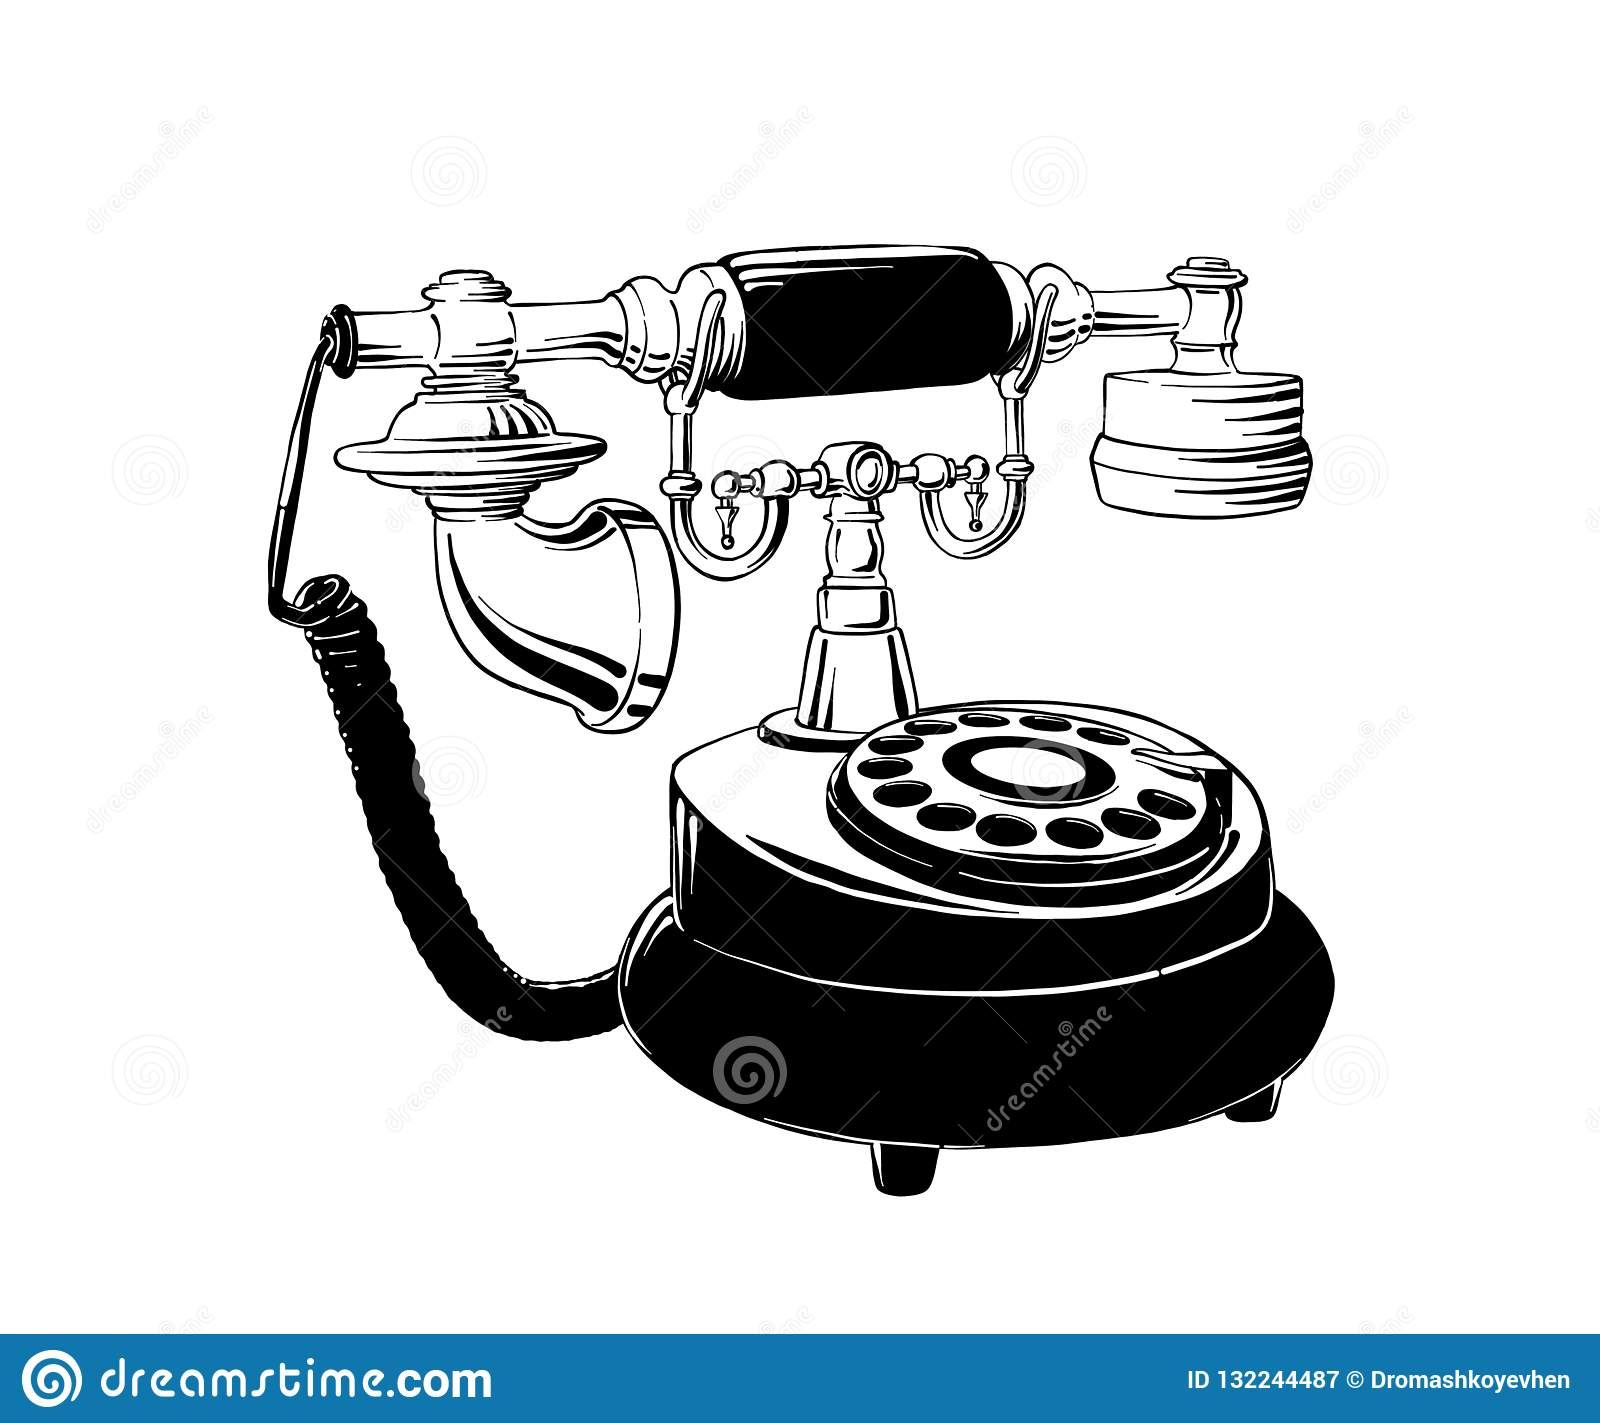 Hand drawn sketch of retro phone in black isolated on white background. Detailed vintage etching style drawing